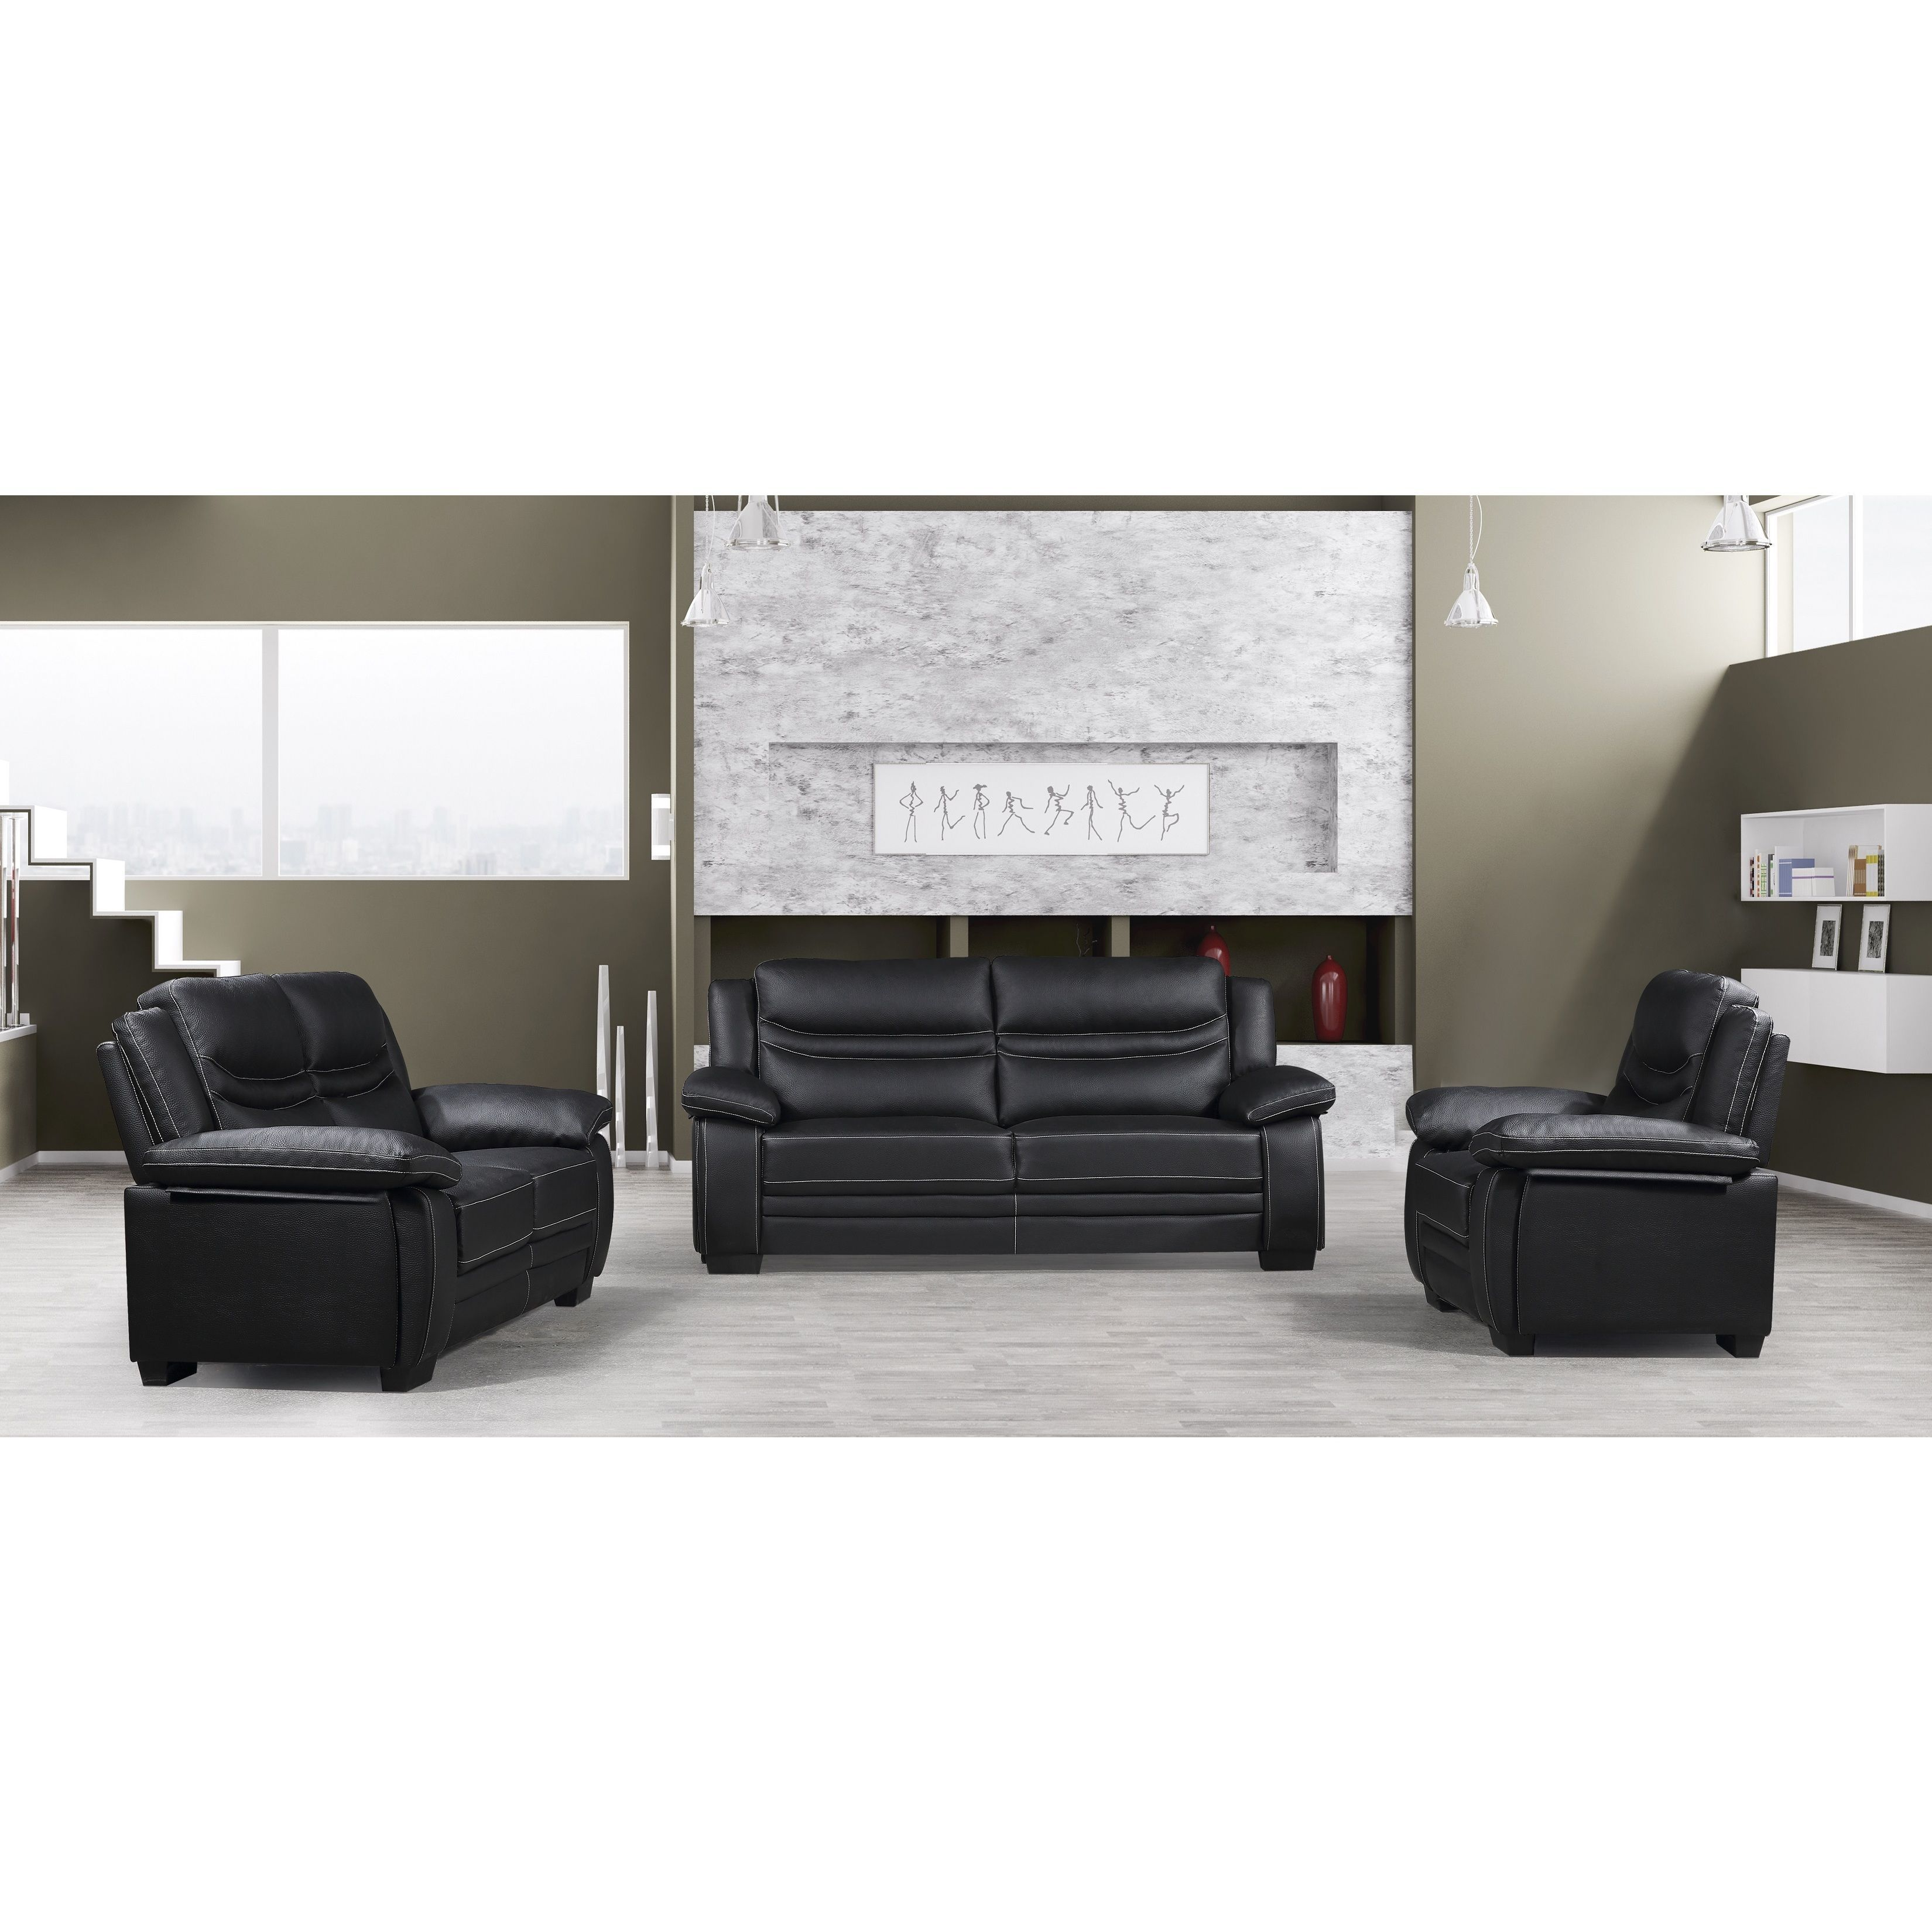 Potenza 2 Pieces Sectional Sofa With Ottoman Upholstered In Bonded